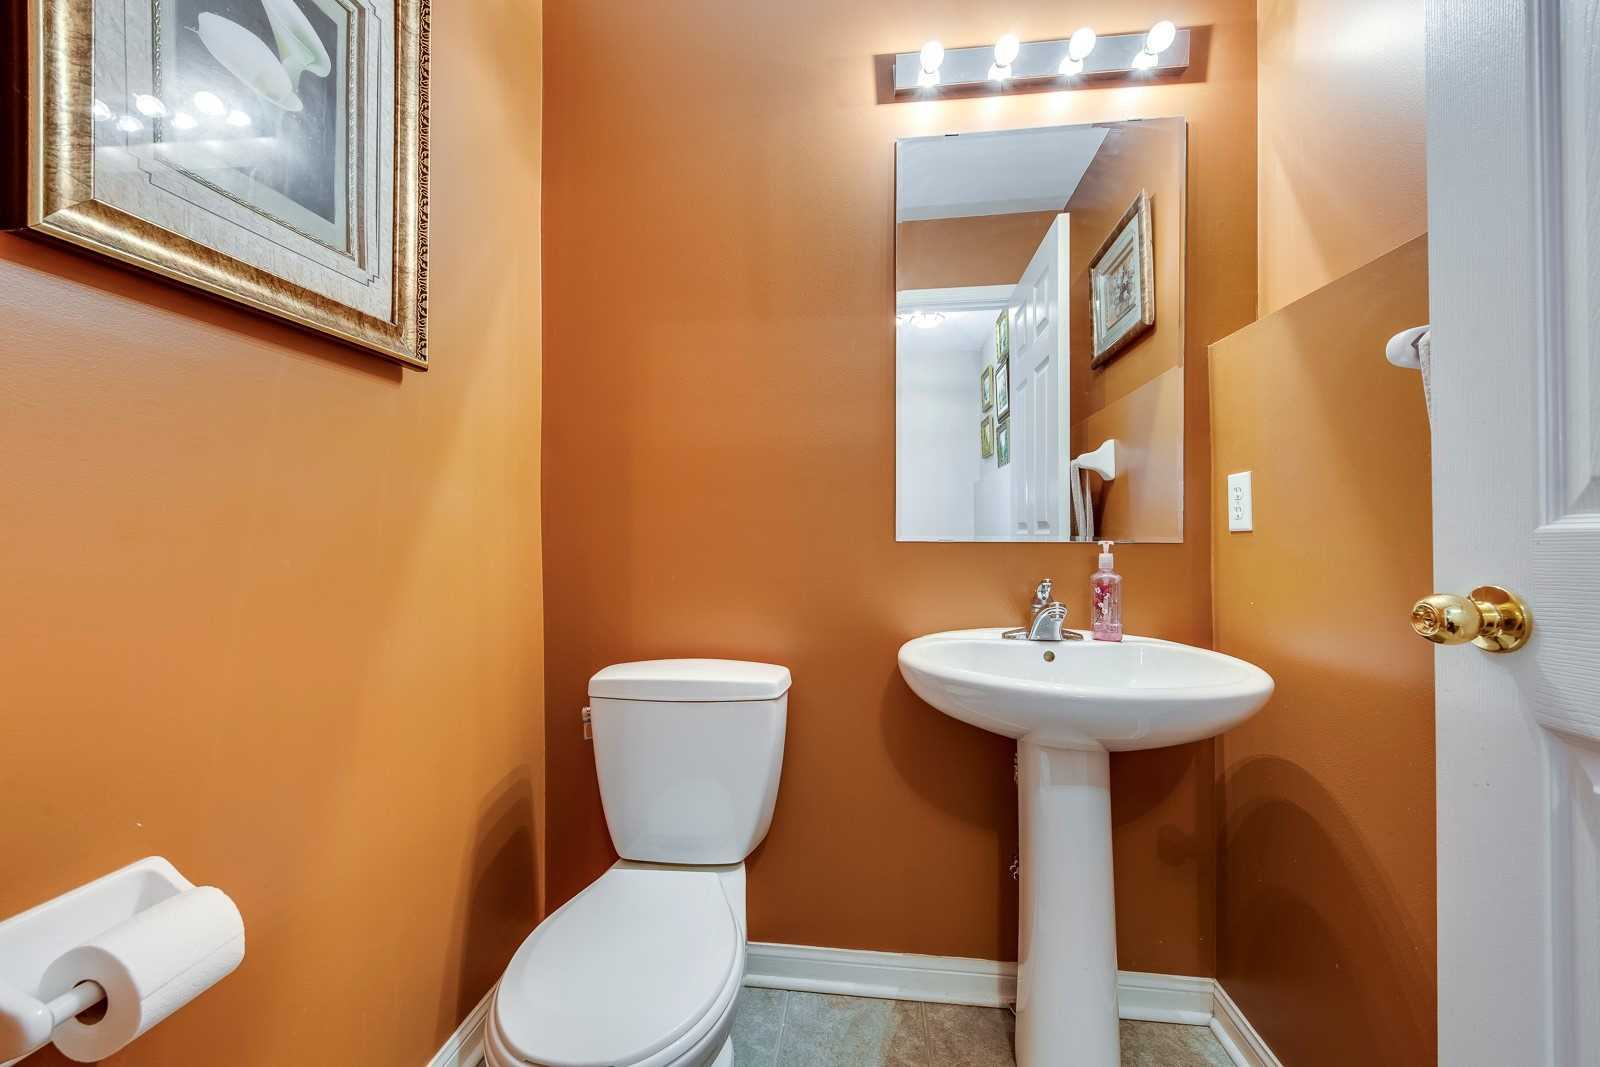 Image 19 of 20 showing inside of 3 Bedroom Att/Row/Twnhouse 2-Storey house for sale at 682 Edwards Ave, Milton L9T6B3